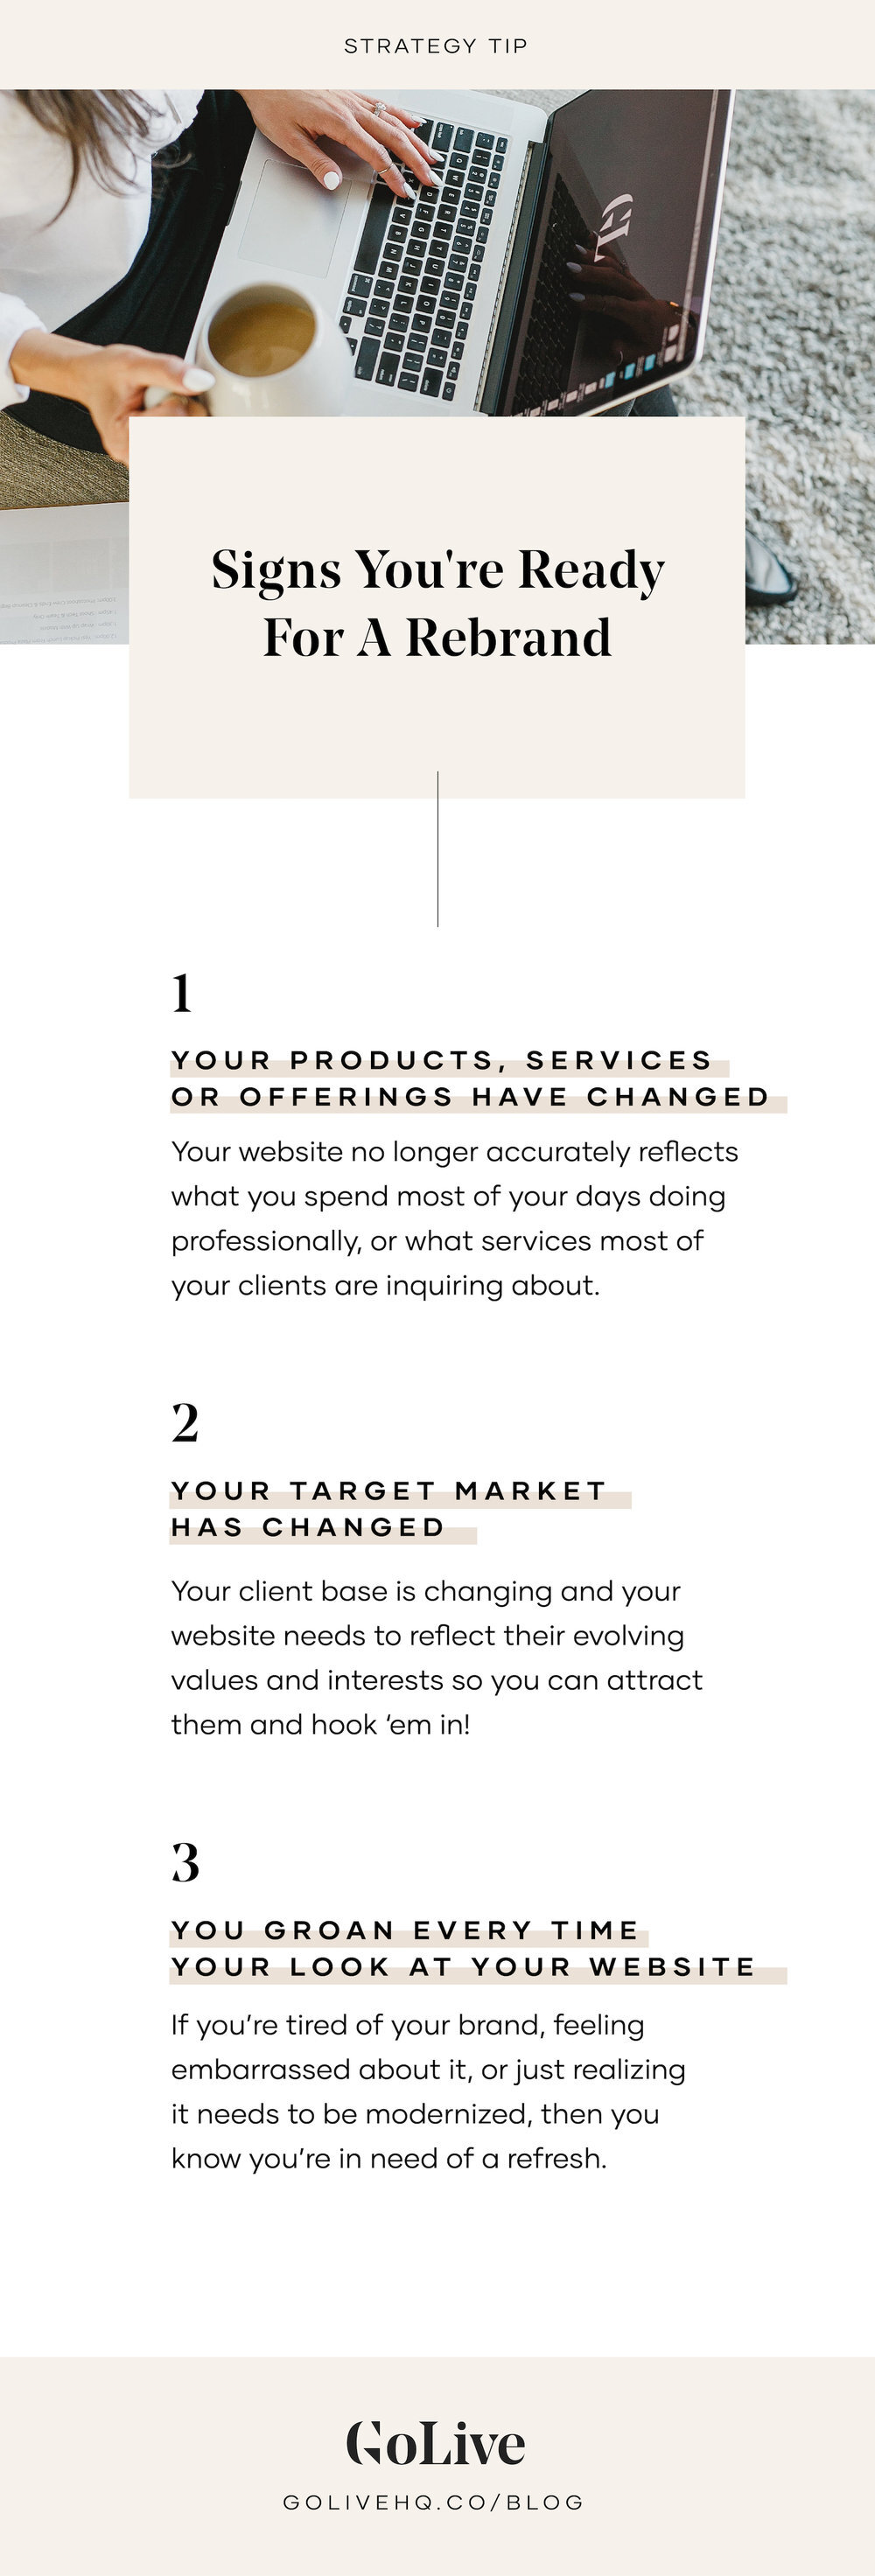 3+signs+you're+ready+for+a+rebrand+_+By+GoLive.jpg